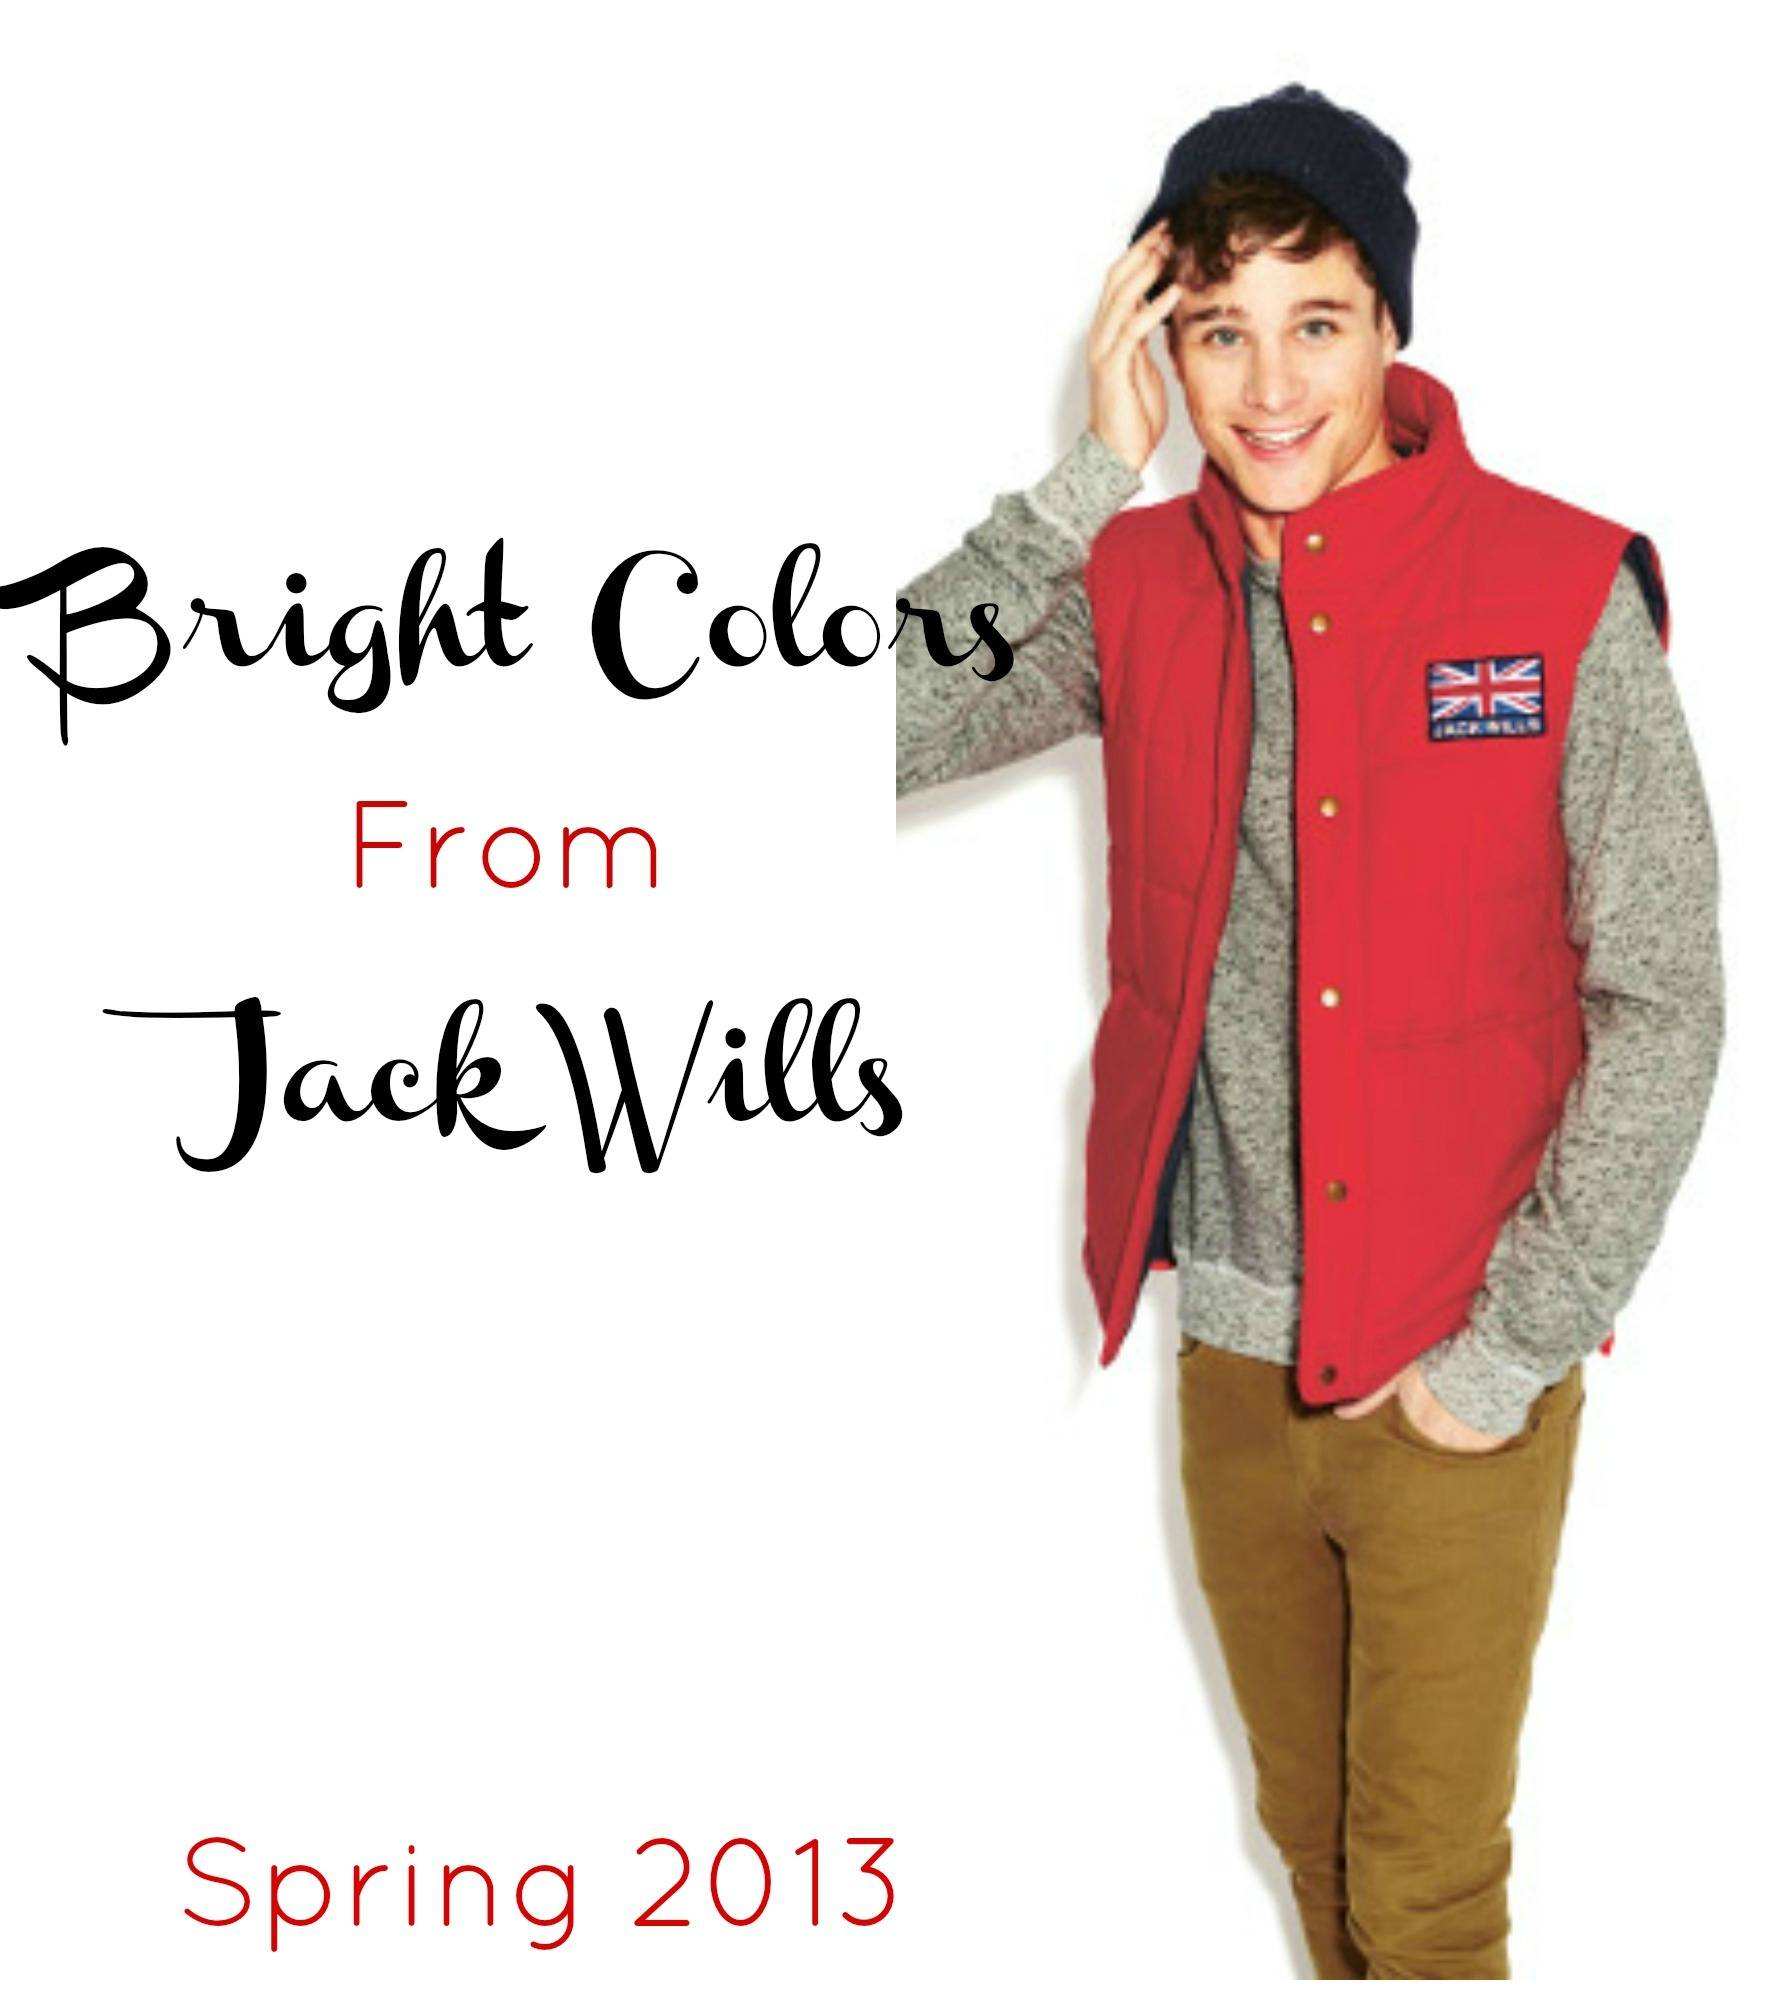 Jack Wills Spring 2013, Jack Wills Seasonnaires - the ultimate summer job, Jack Wills internship